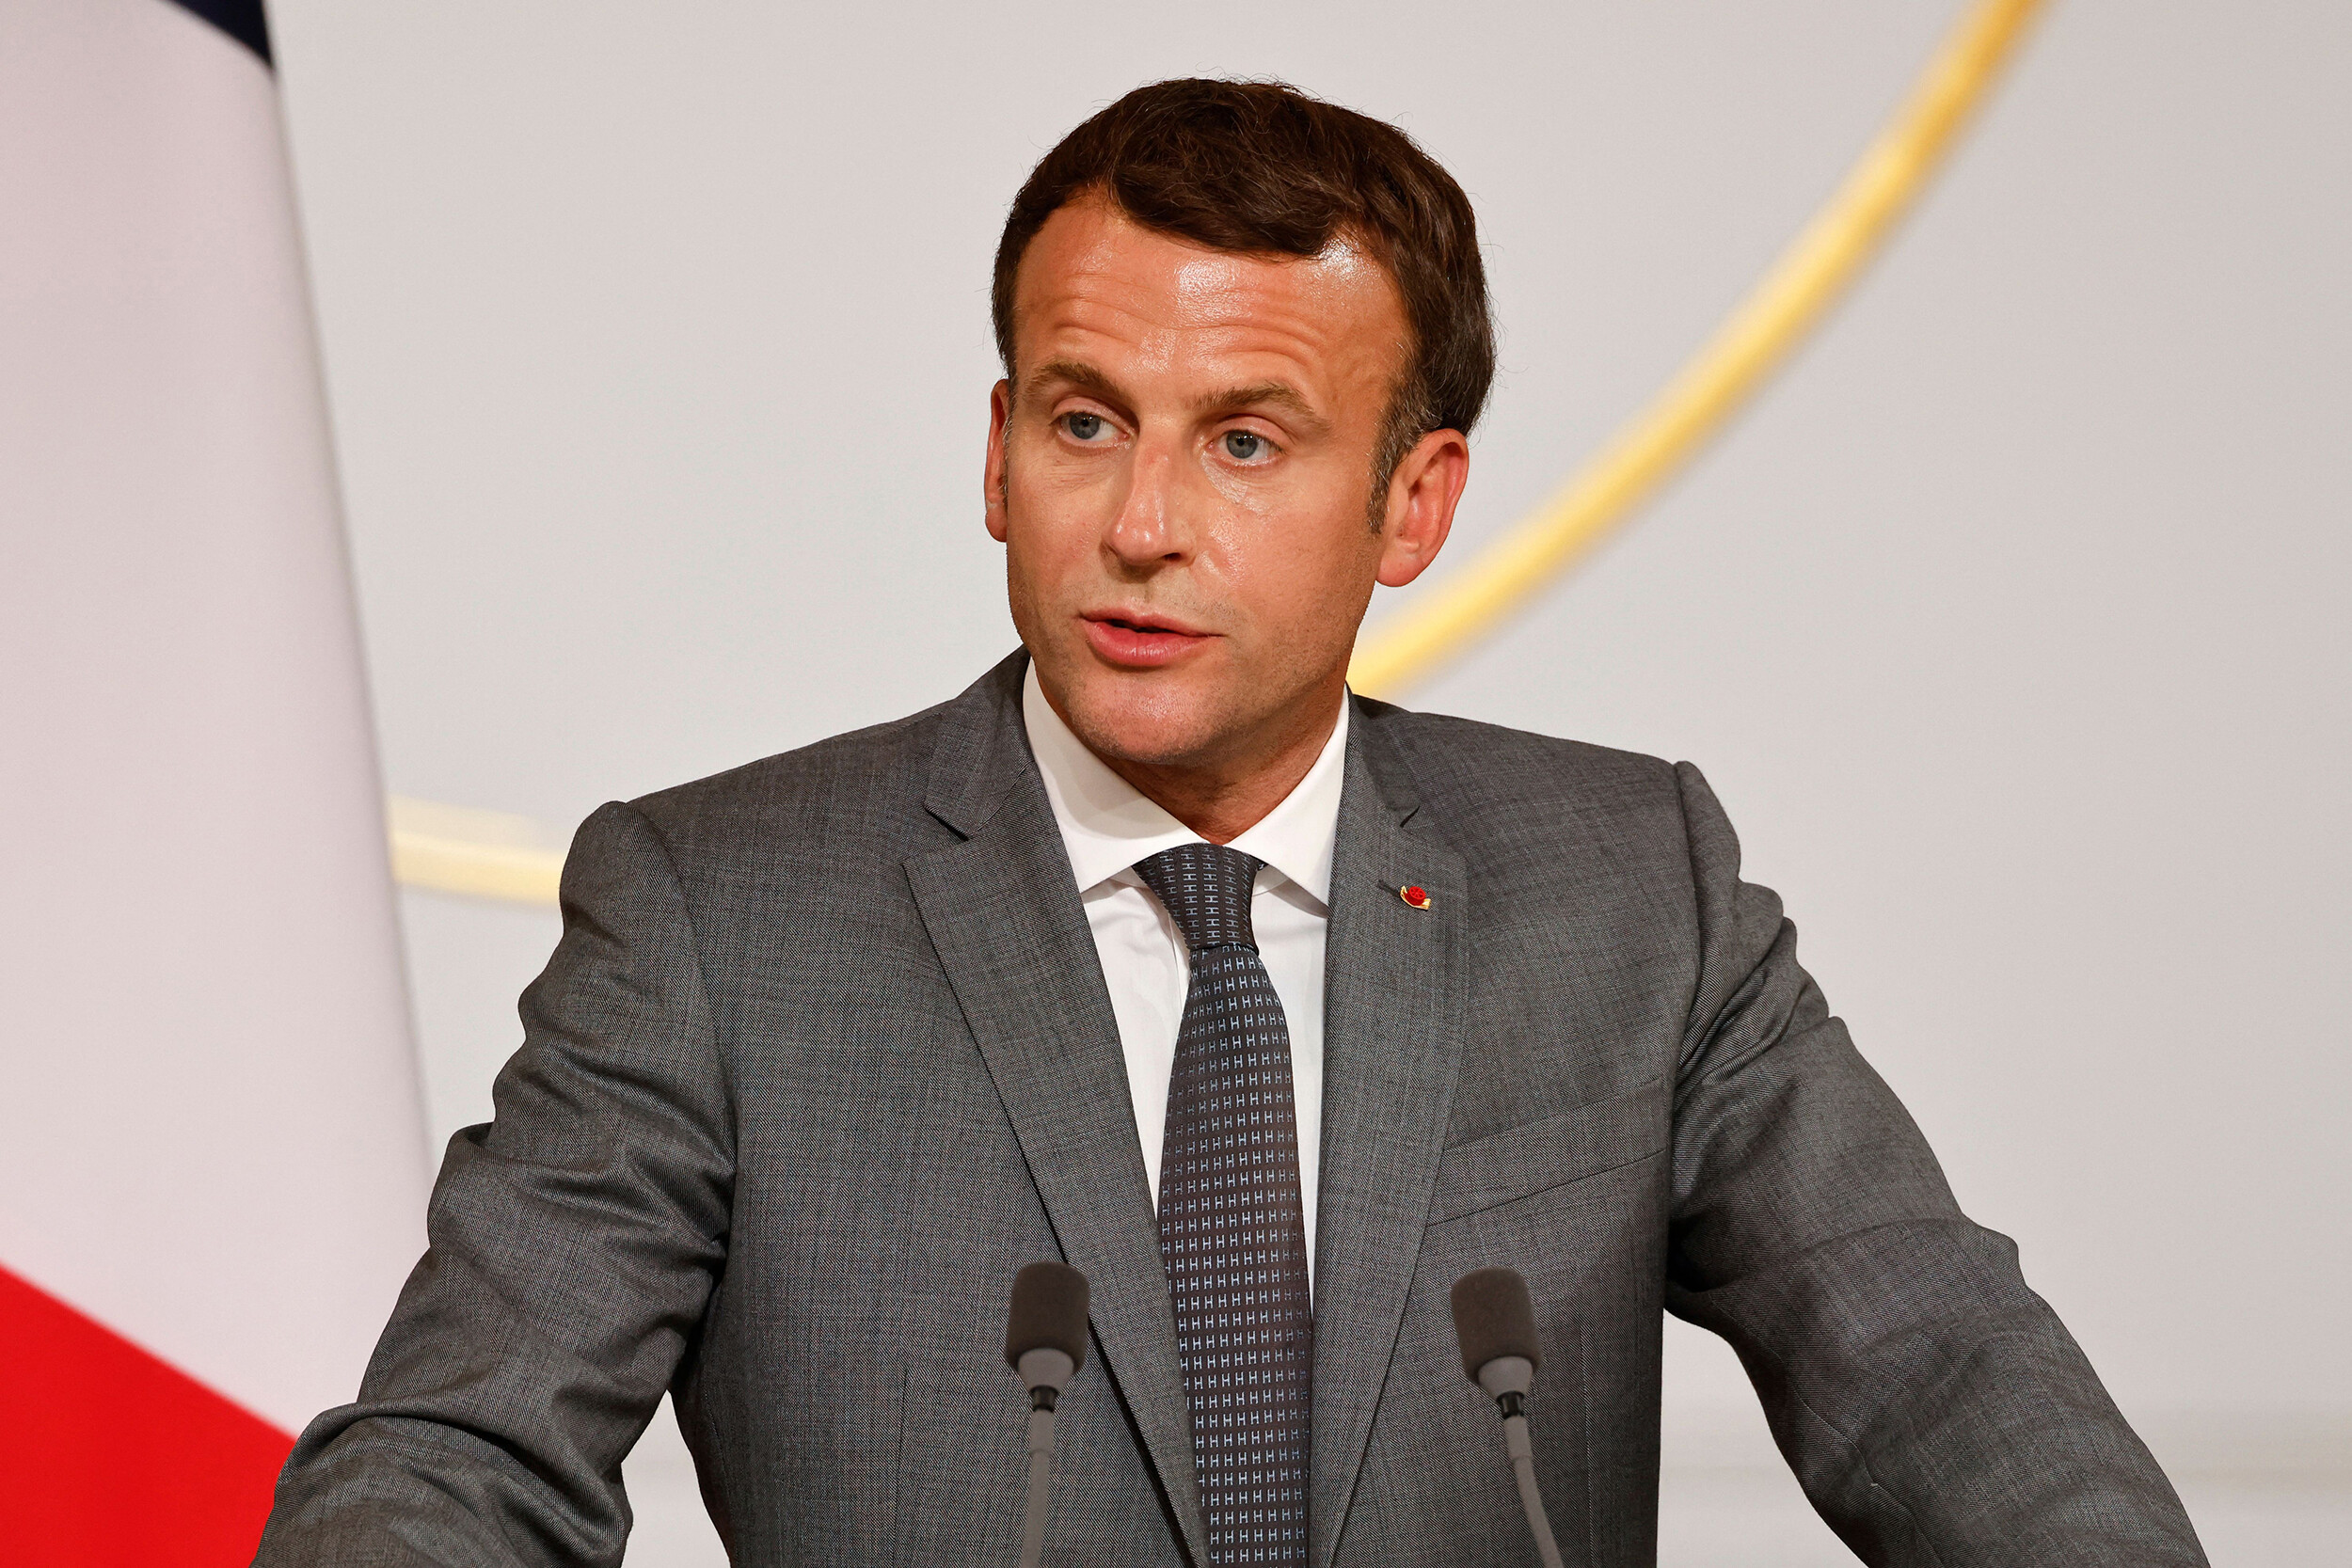 Biden to speak to Macron 'in the coming days' amid diplomatic dust-up with France